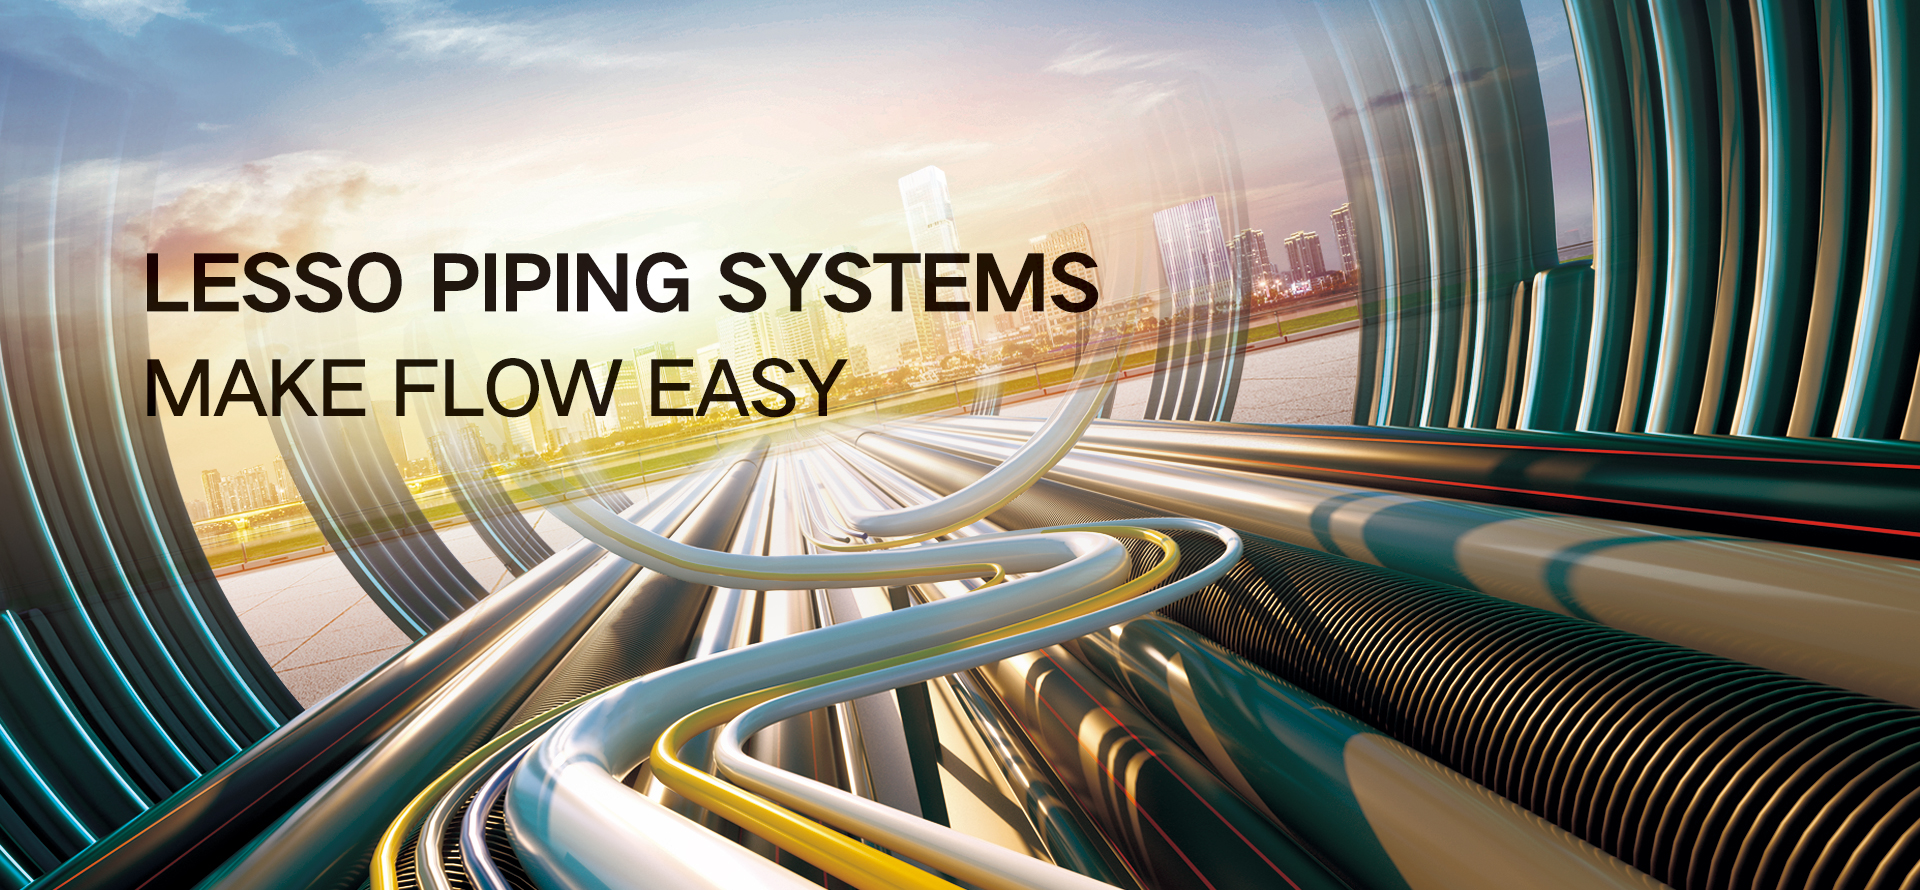 Lesso LESSO PIPING SYSTEMS, MAKE FLOW EASY